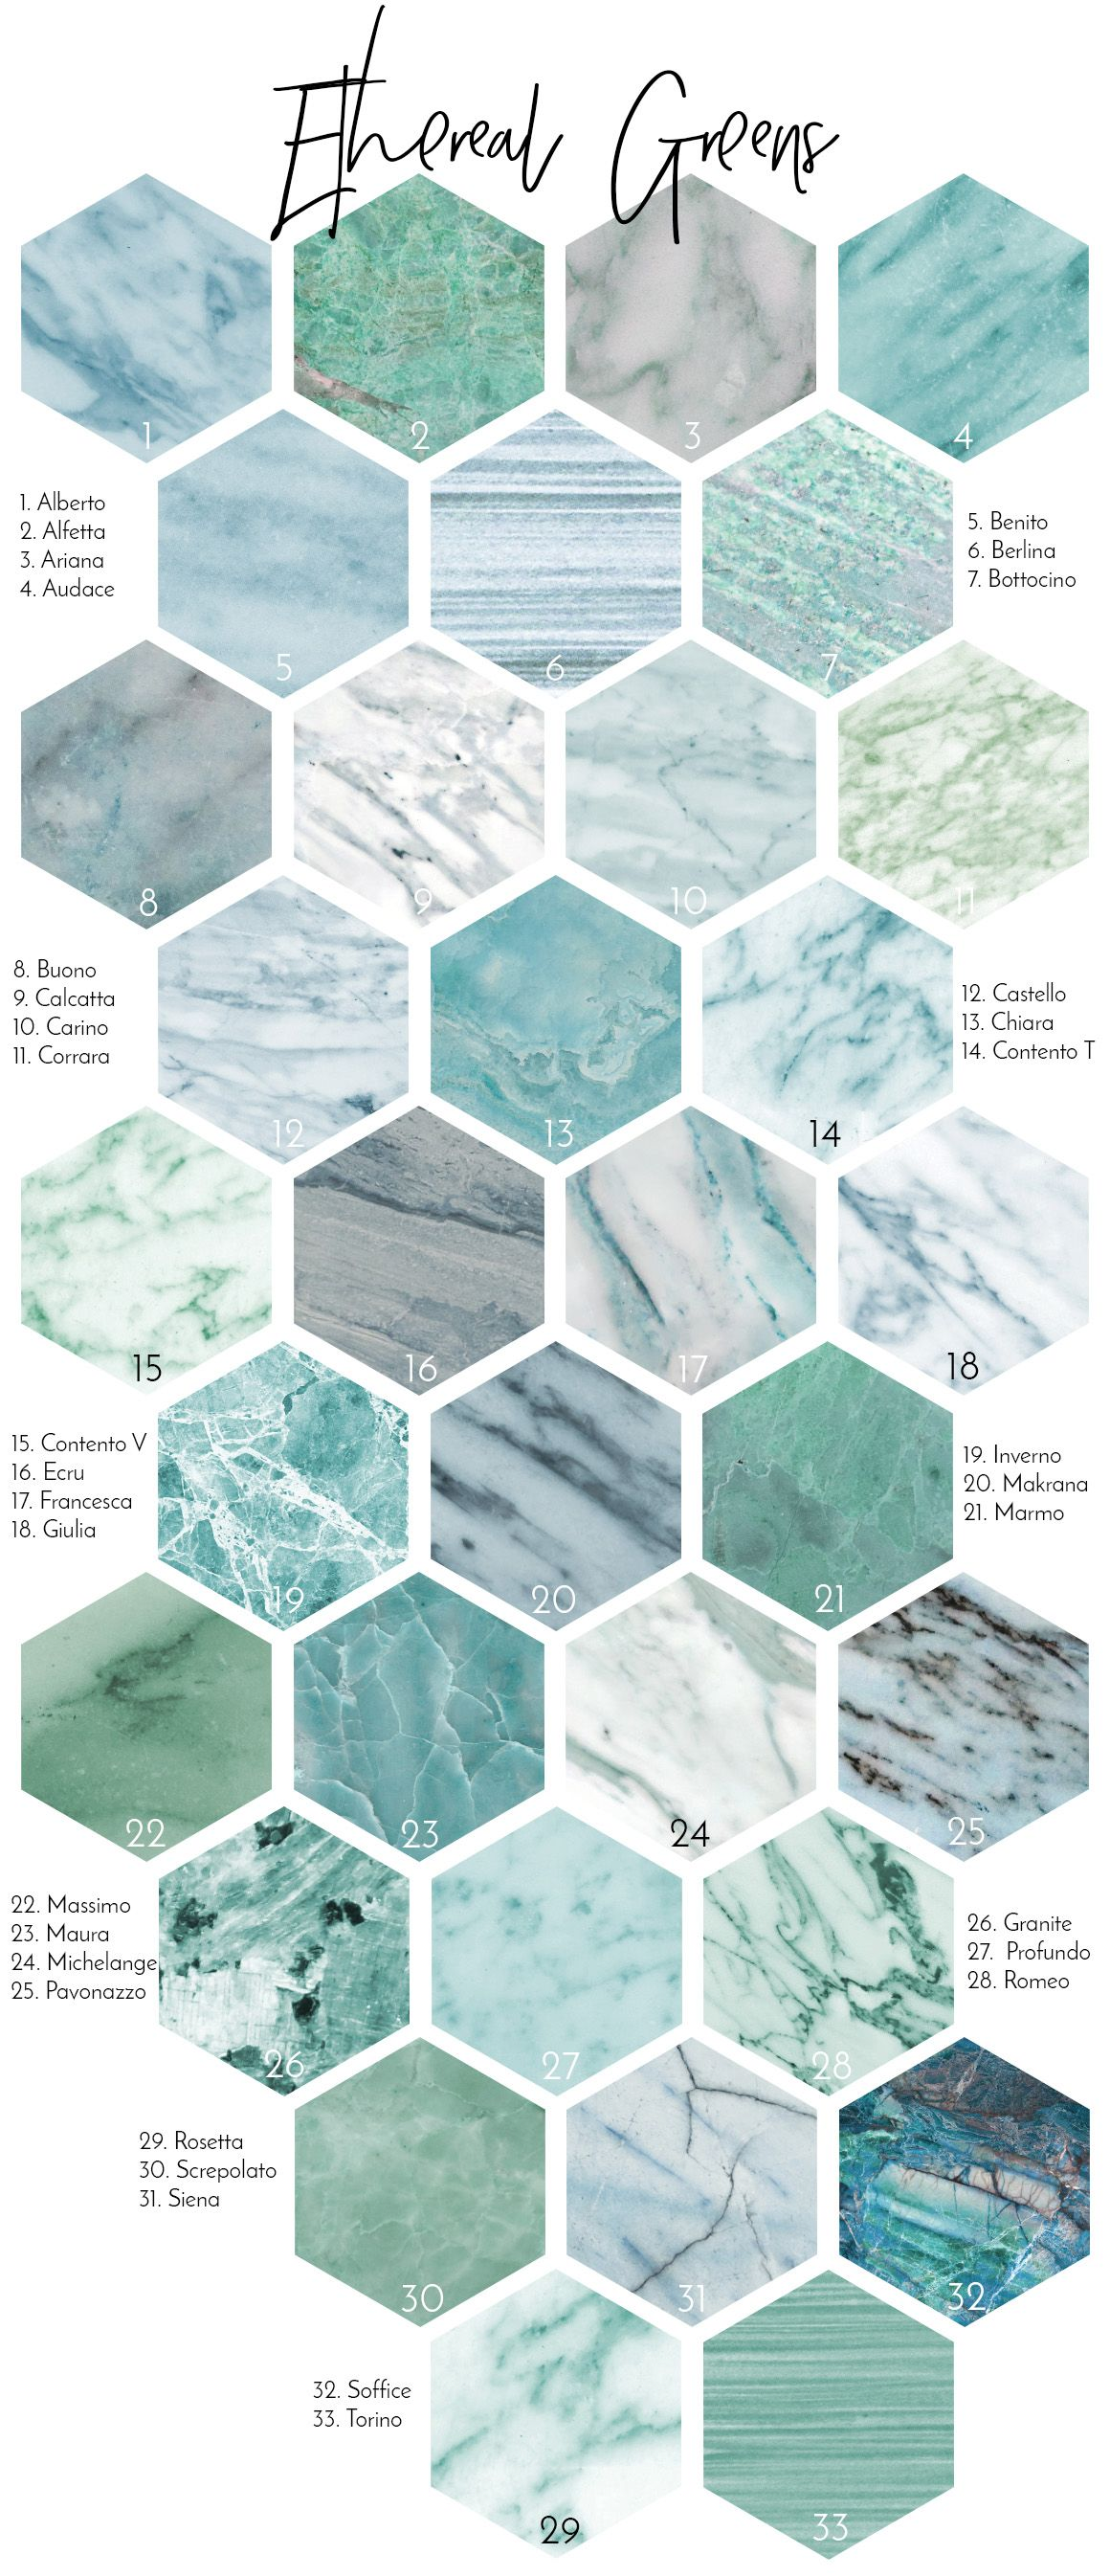 Pin by Creative Market on ✏ Marble Obsessed in 2018 | Pinterest ...